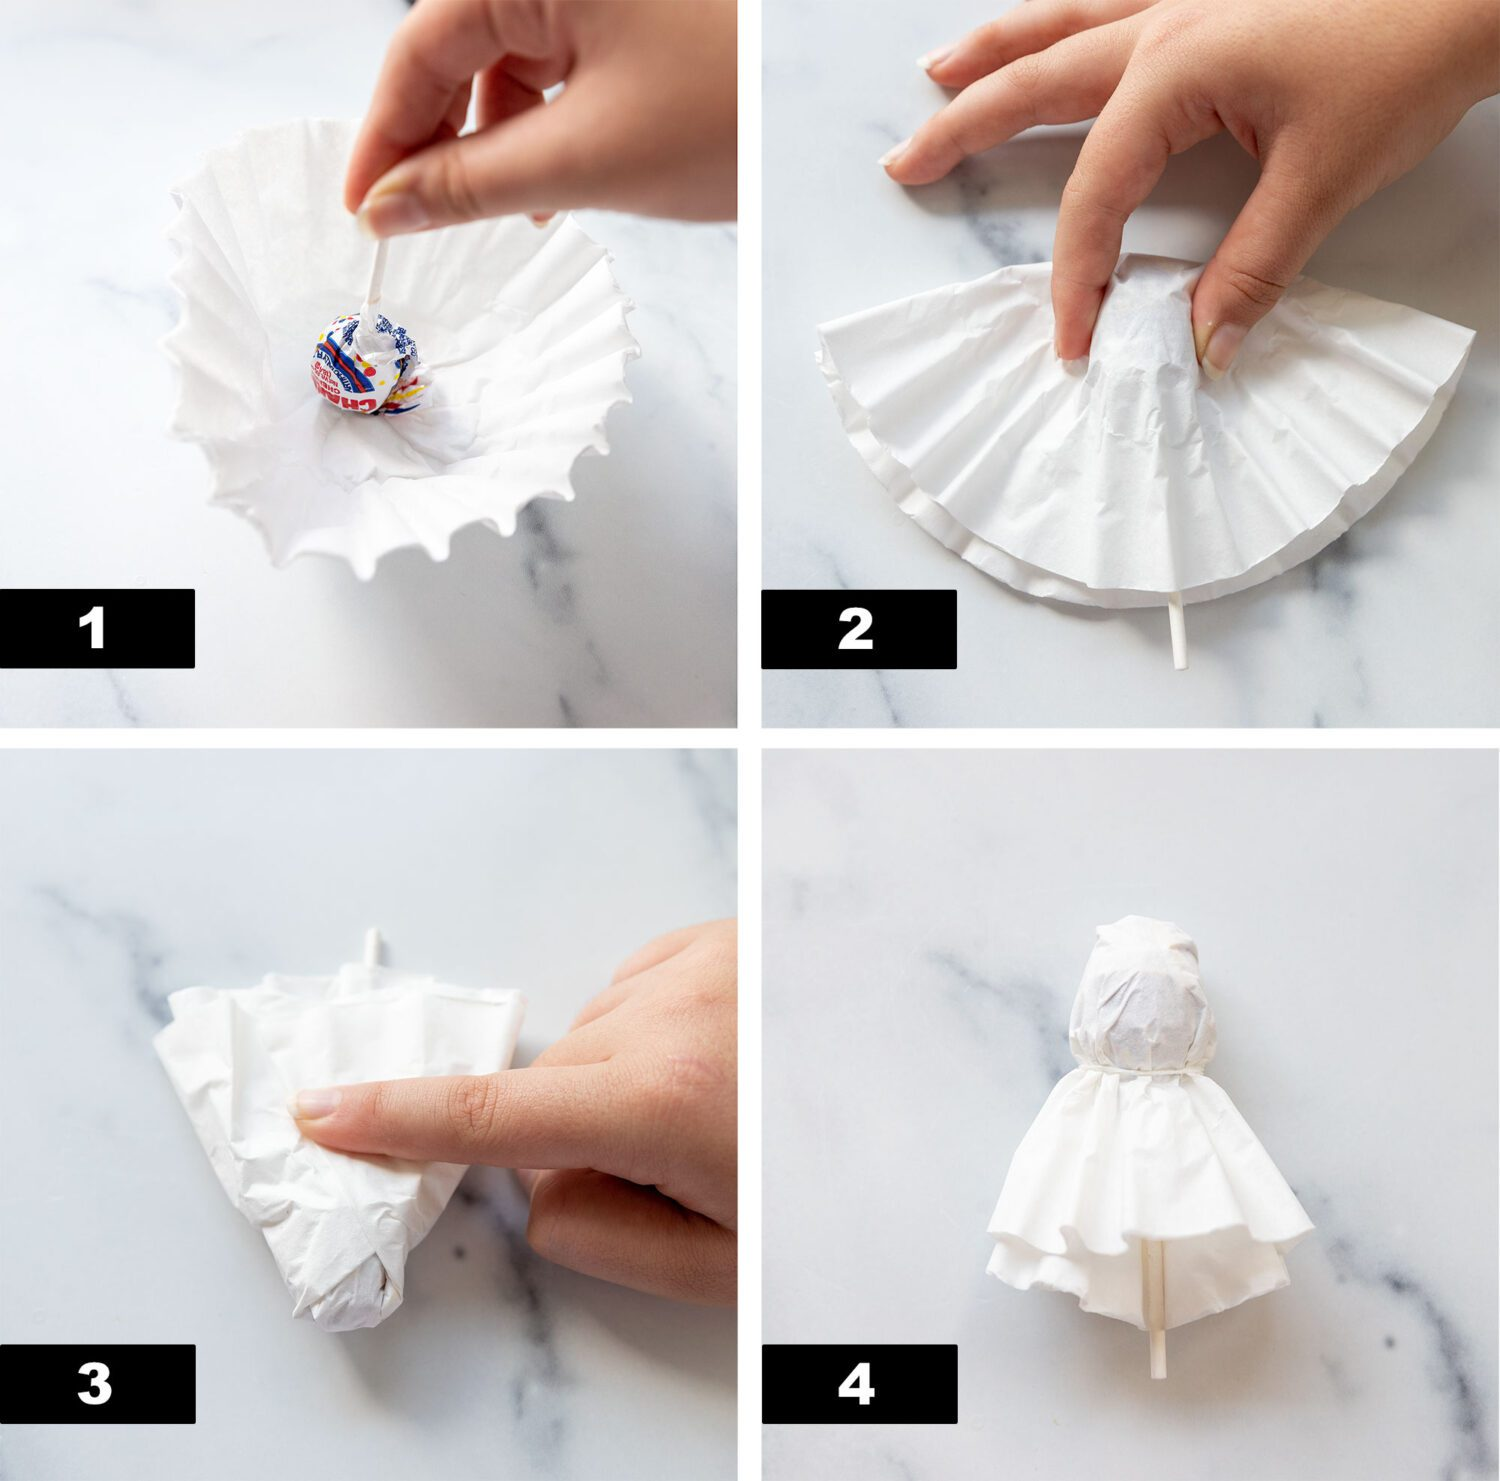 steps to make a ghost lollipop